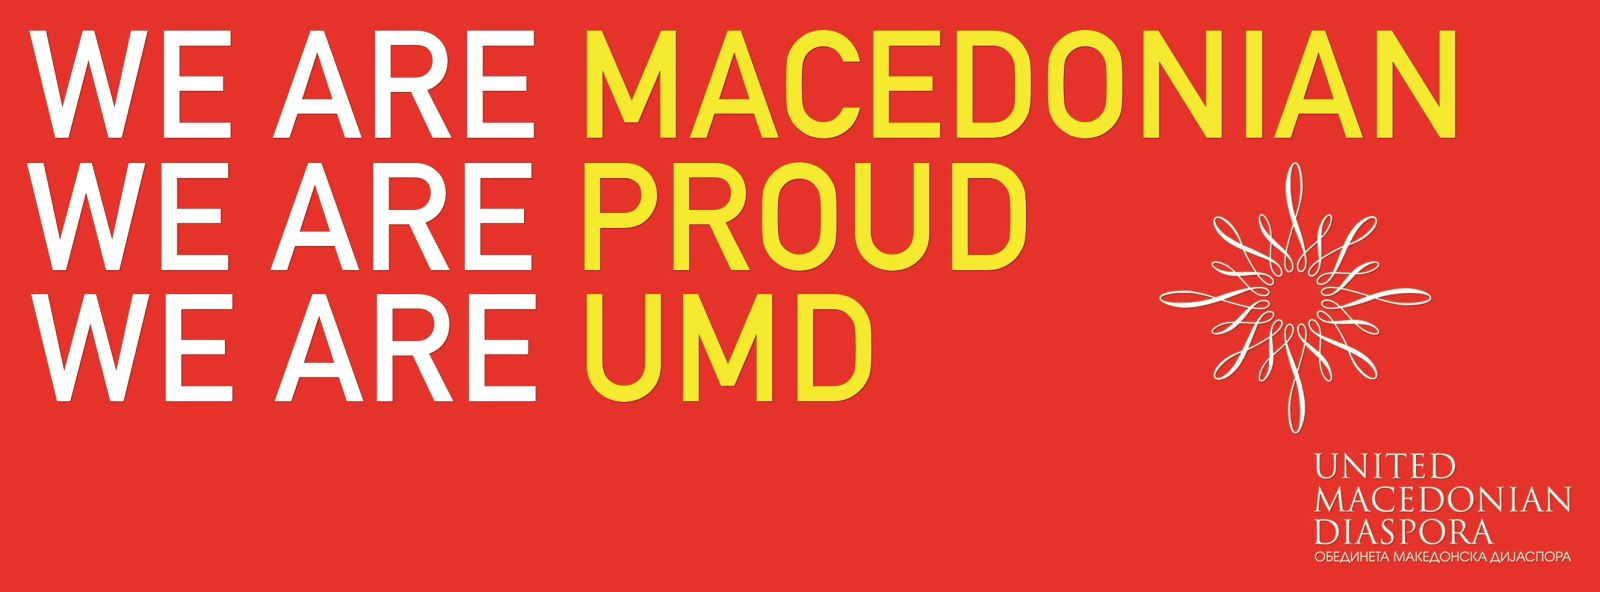 United Macedonian Diaspora